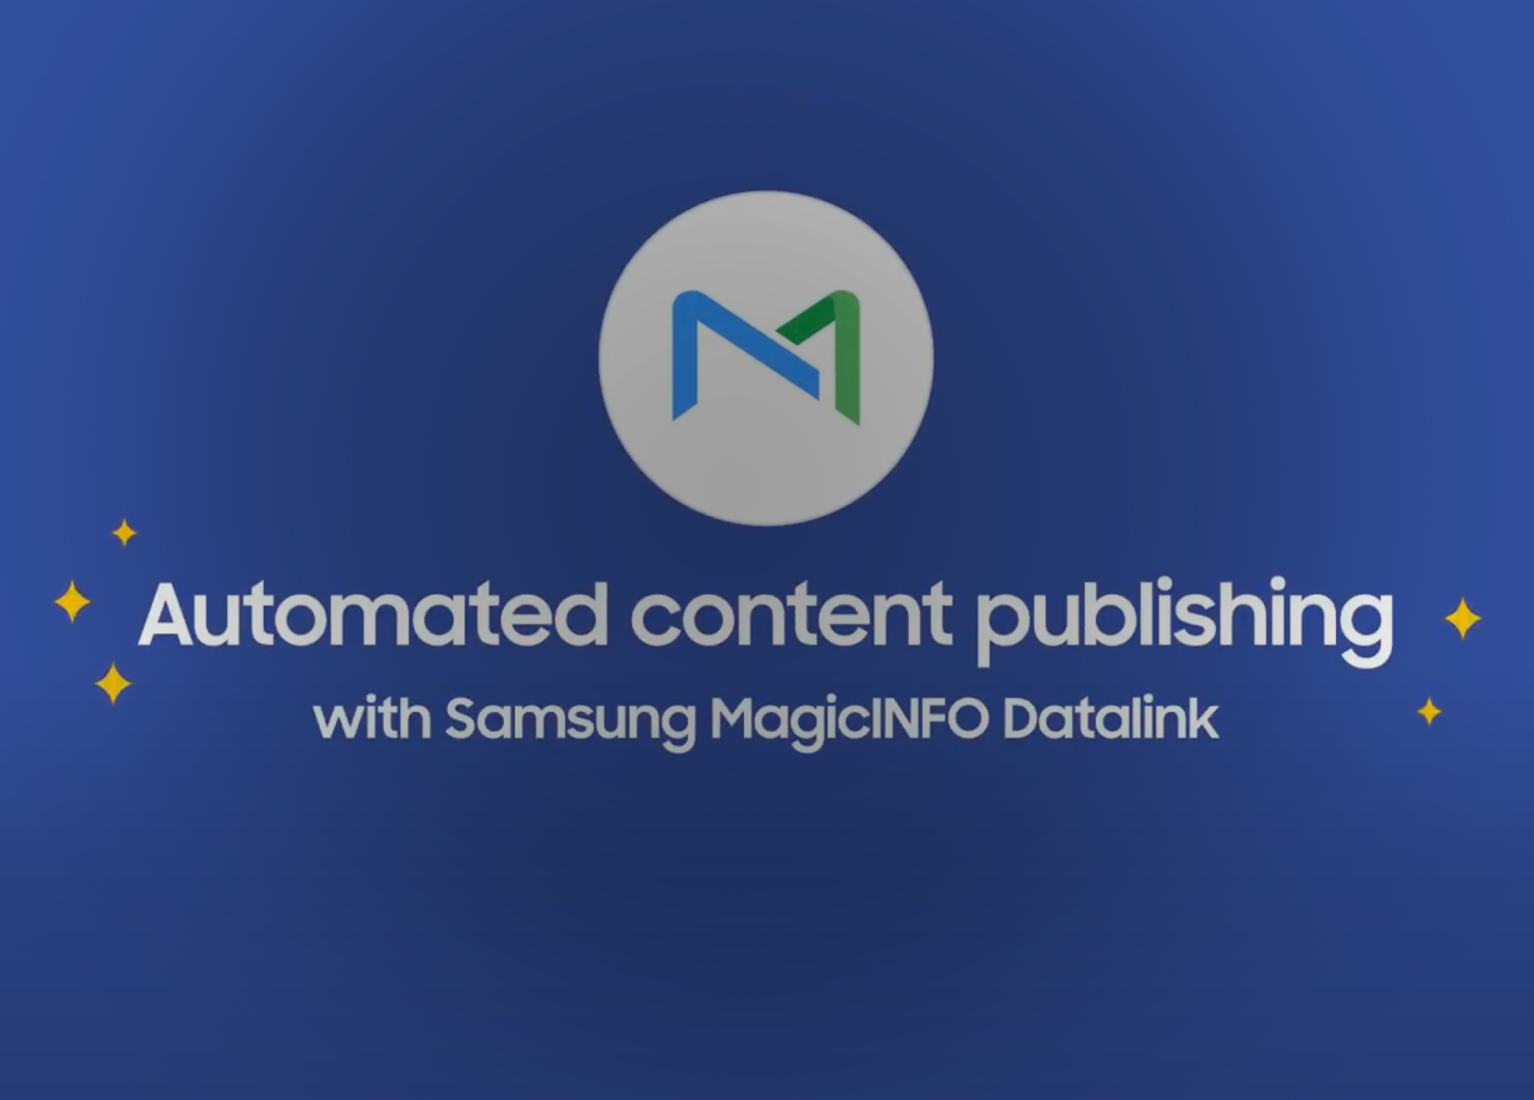 Samsung MagicINFO™ Datalink: Dynamic Content Publication